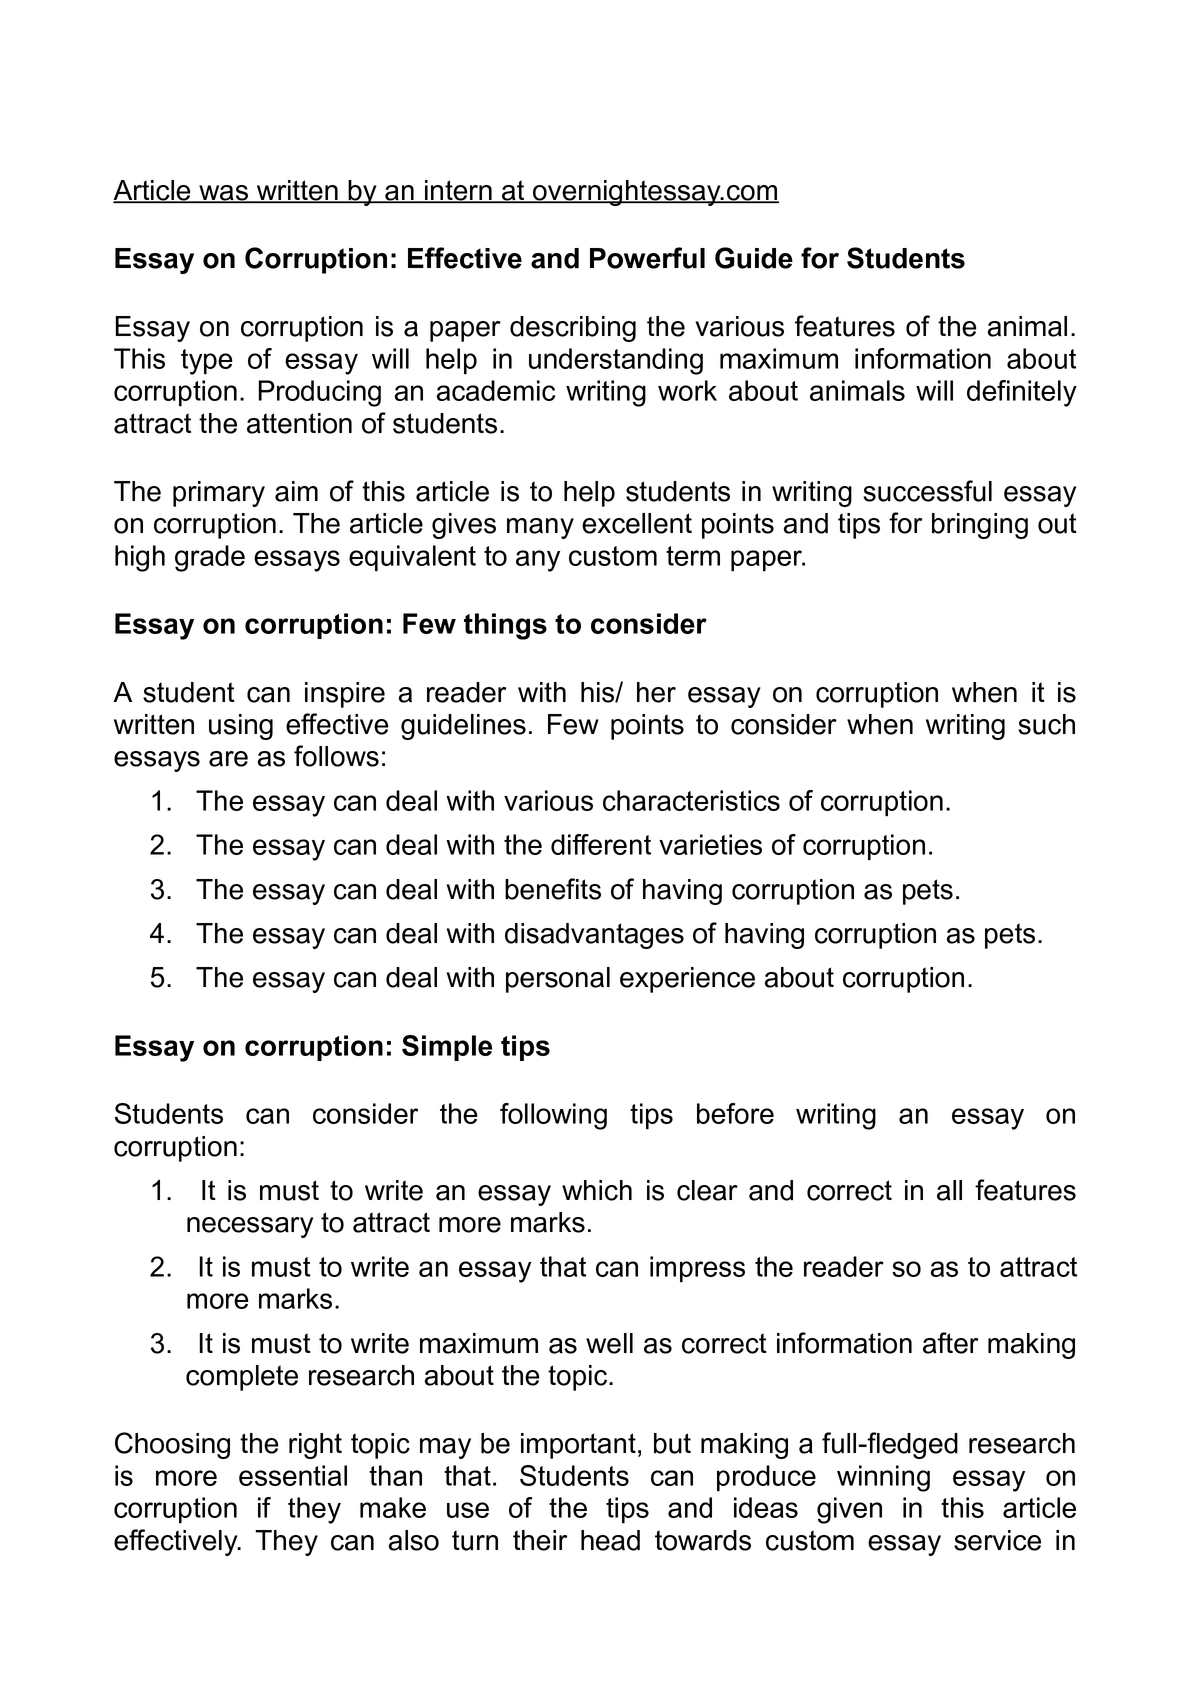 calam eacute o essay on corruption effective and powerful guide for calameacuteo essay on corruption effective and powerful guide for students